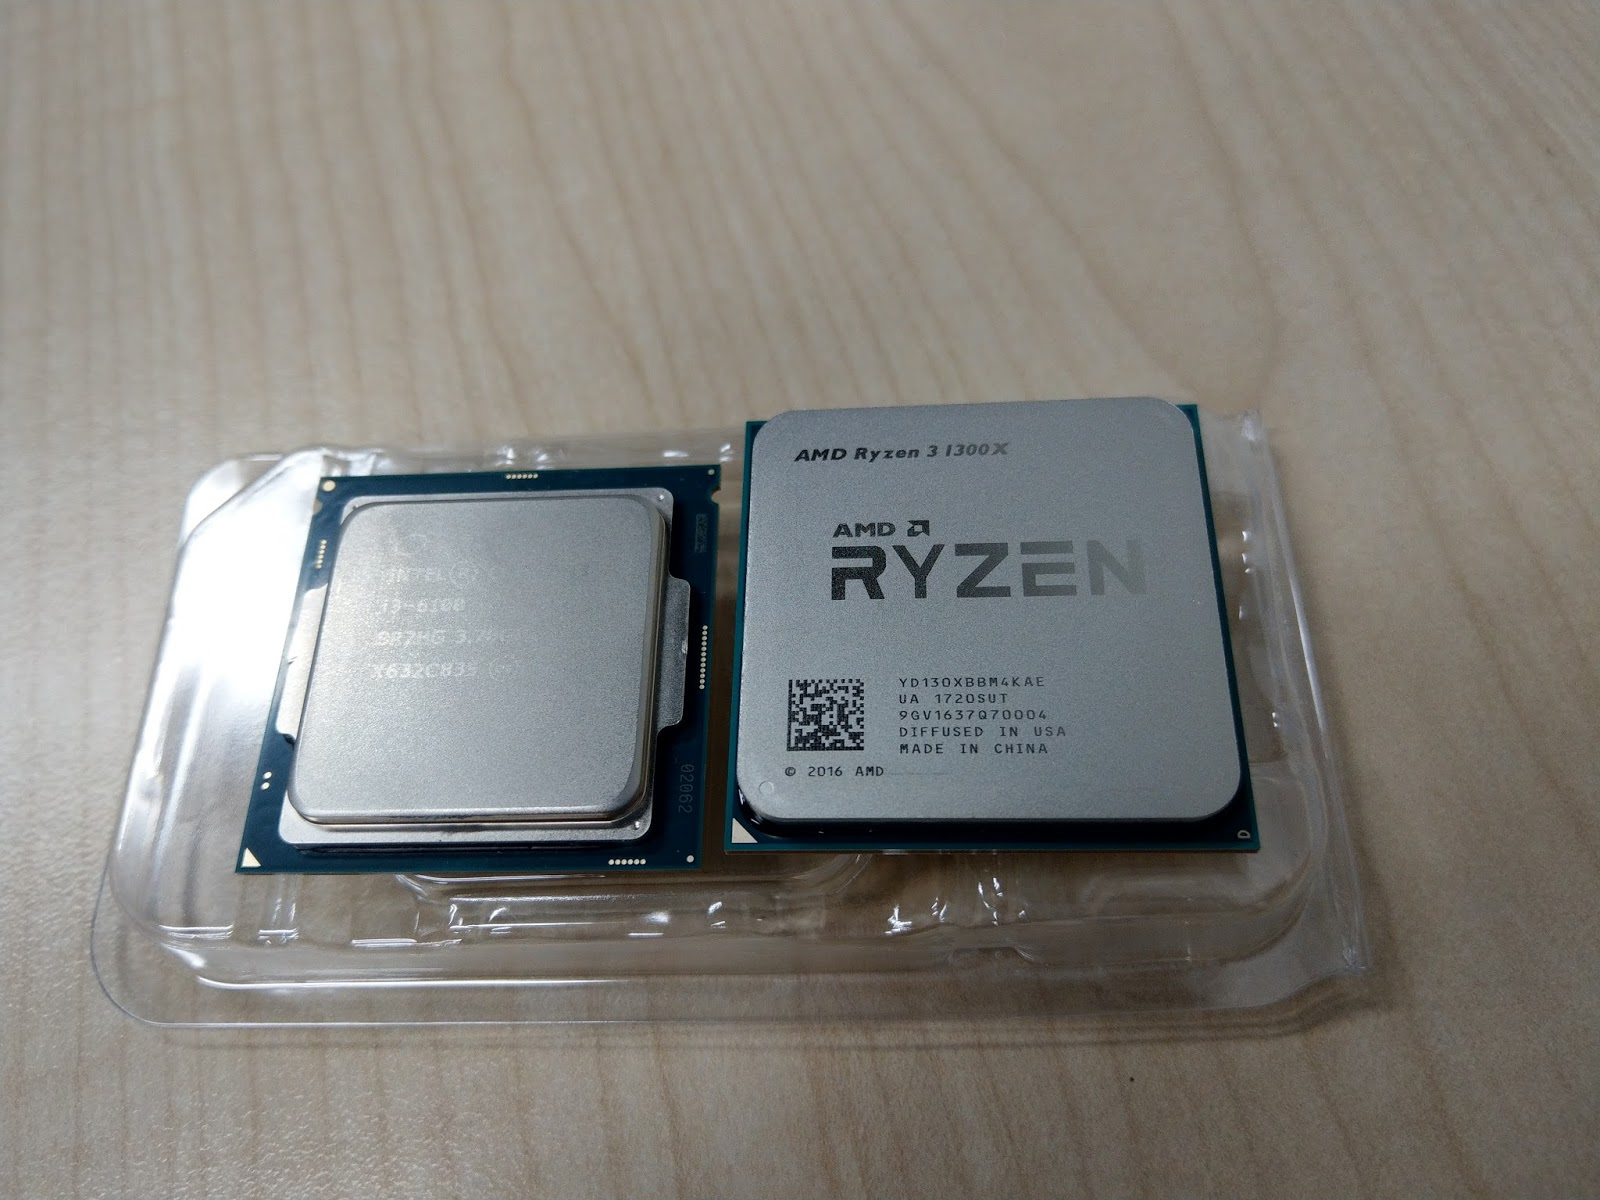 Review of the AMD Ryzen 3 - Is it better than the Intel Core i3